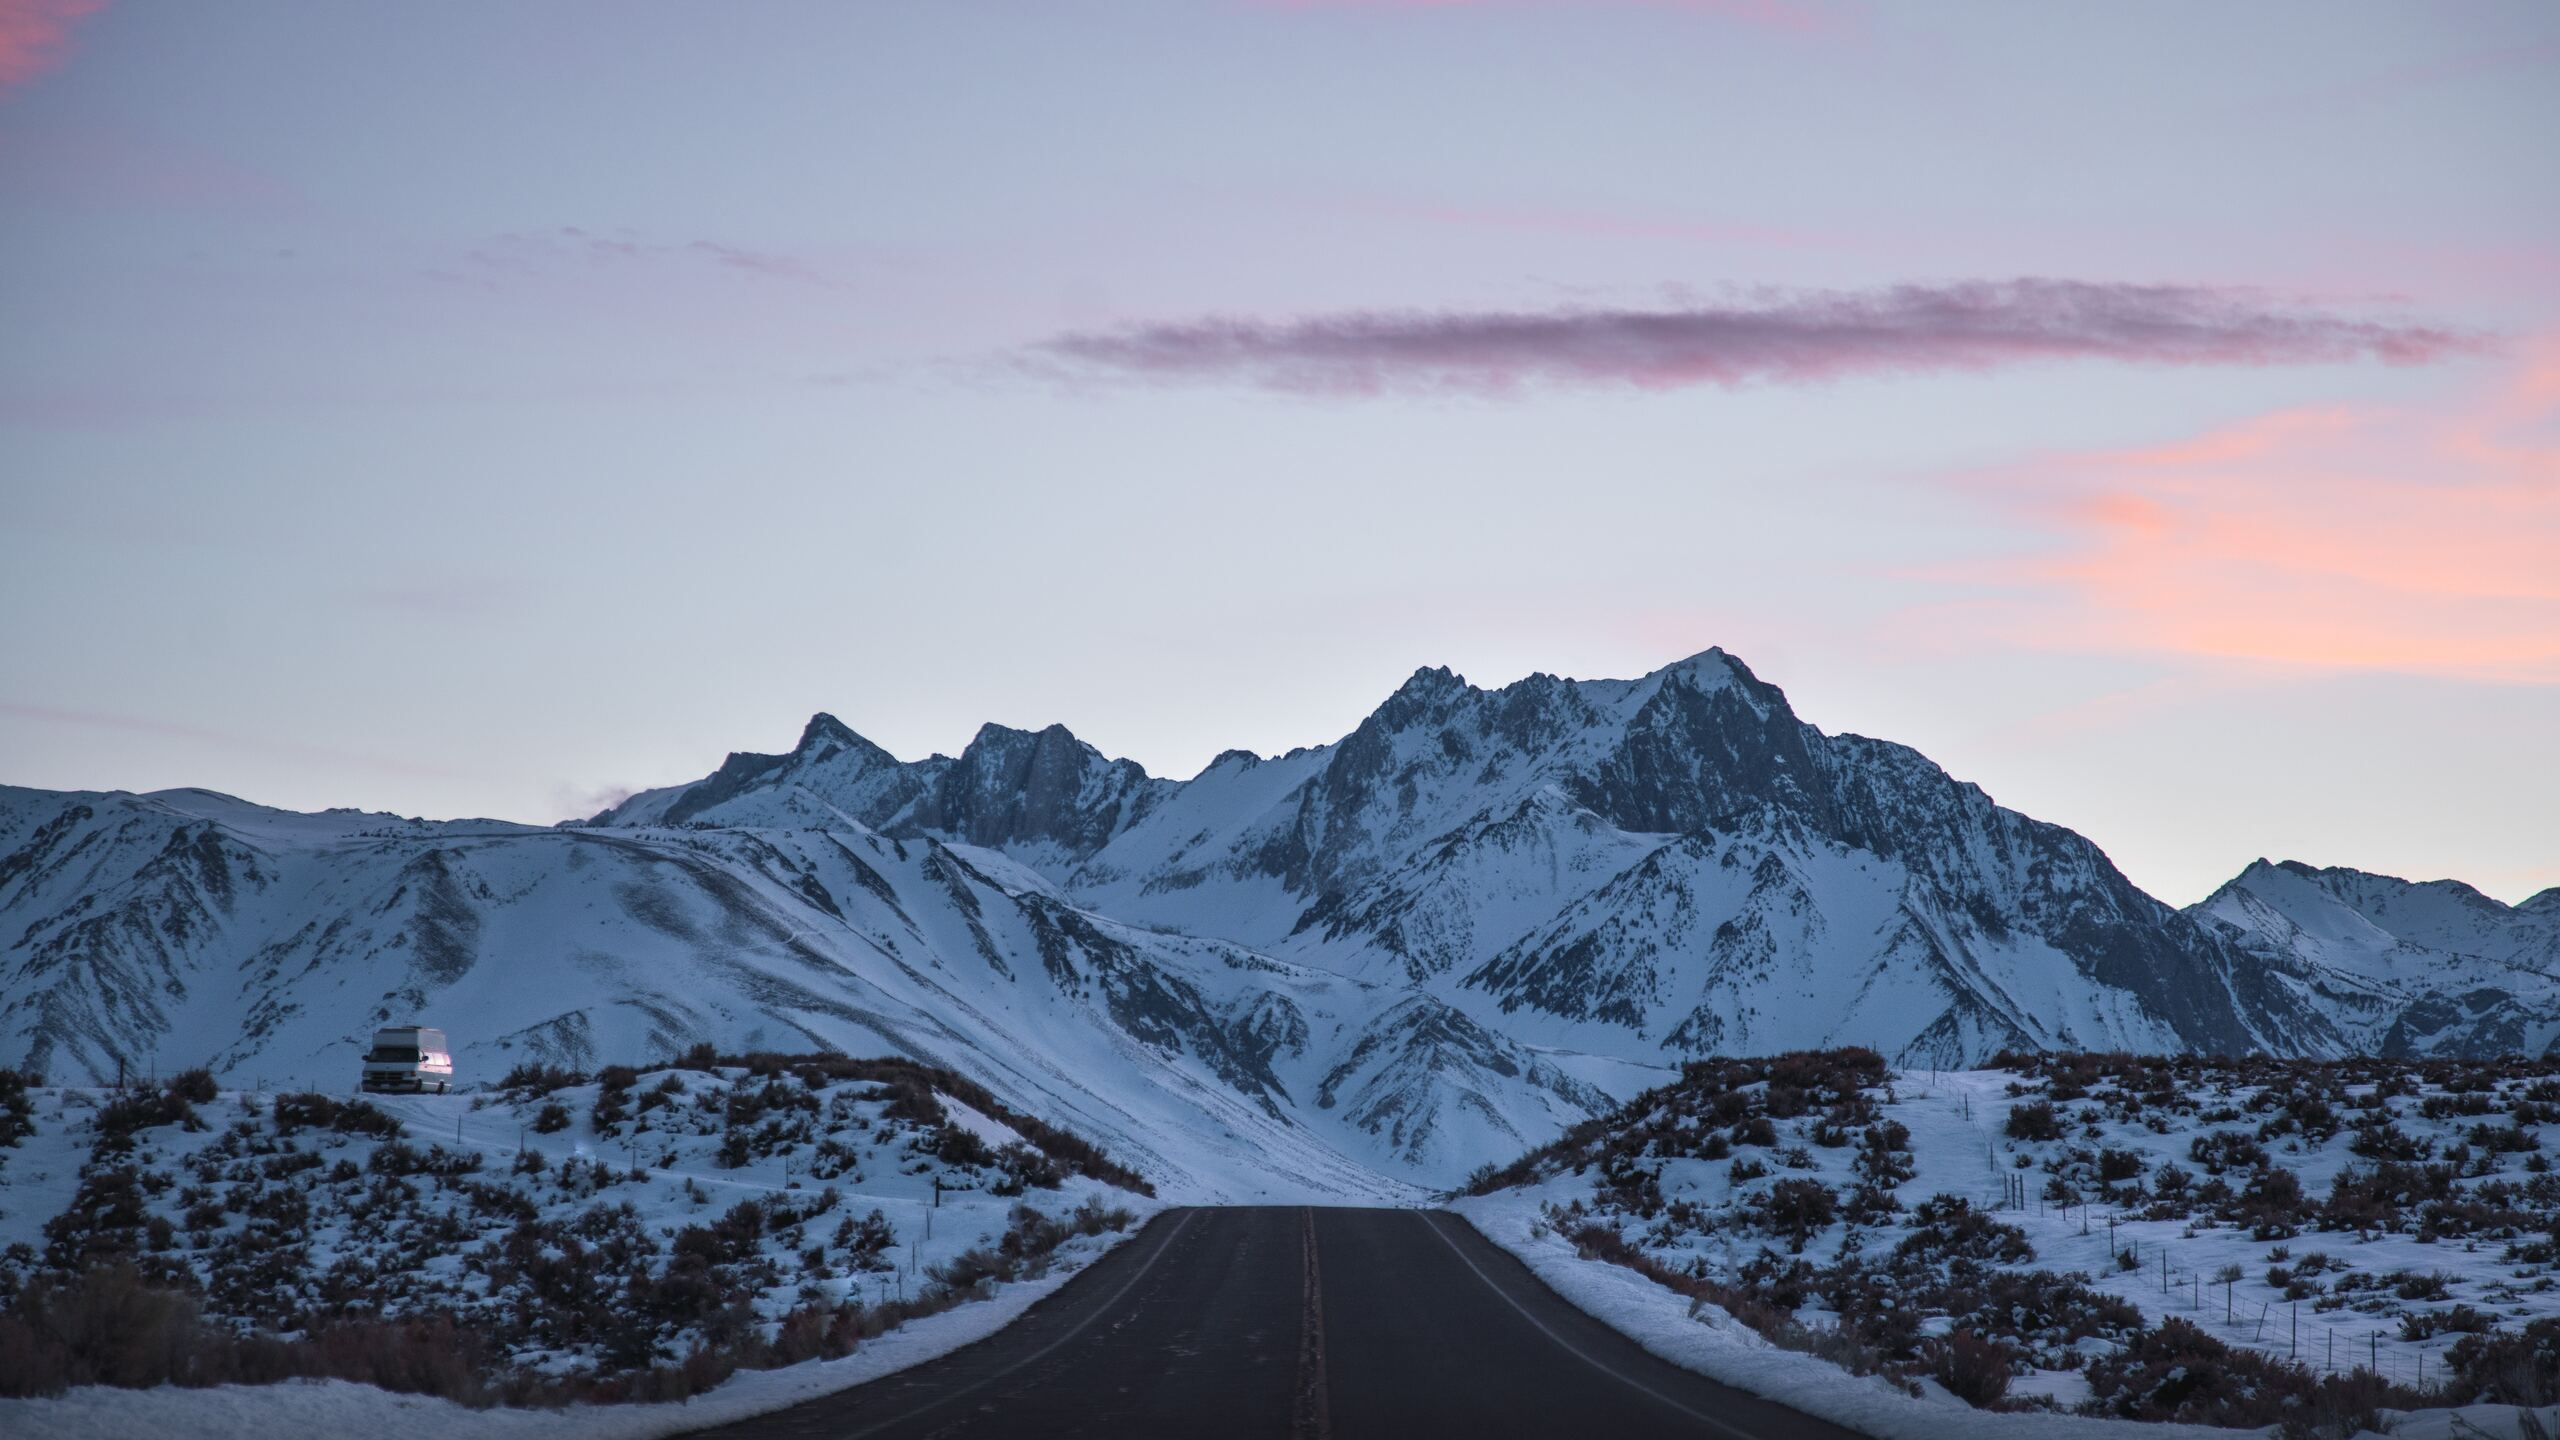 2560x1440 Road Outdoors Snowy Peak 8k 1440p Resolution Hd 4k Wallpapers Images Backgrounds Photos And Pictures